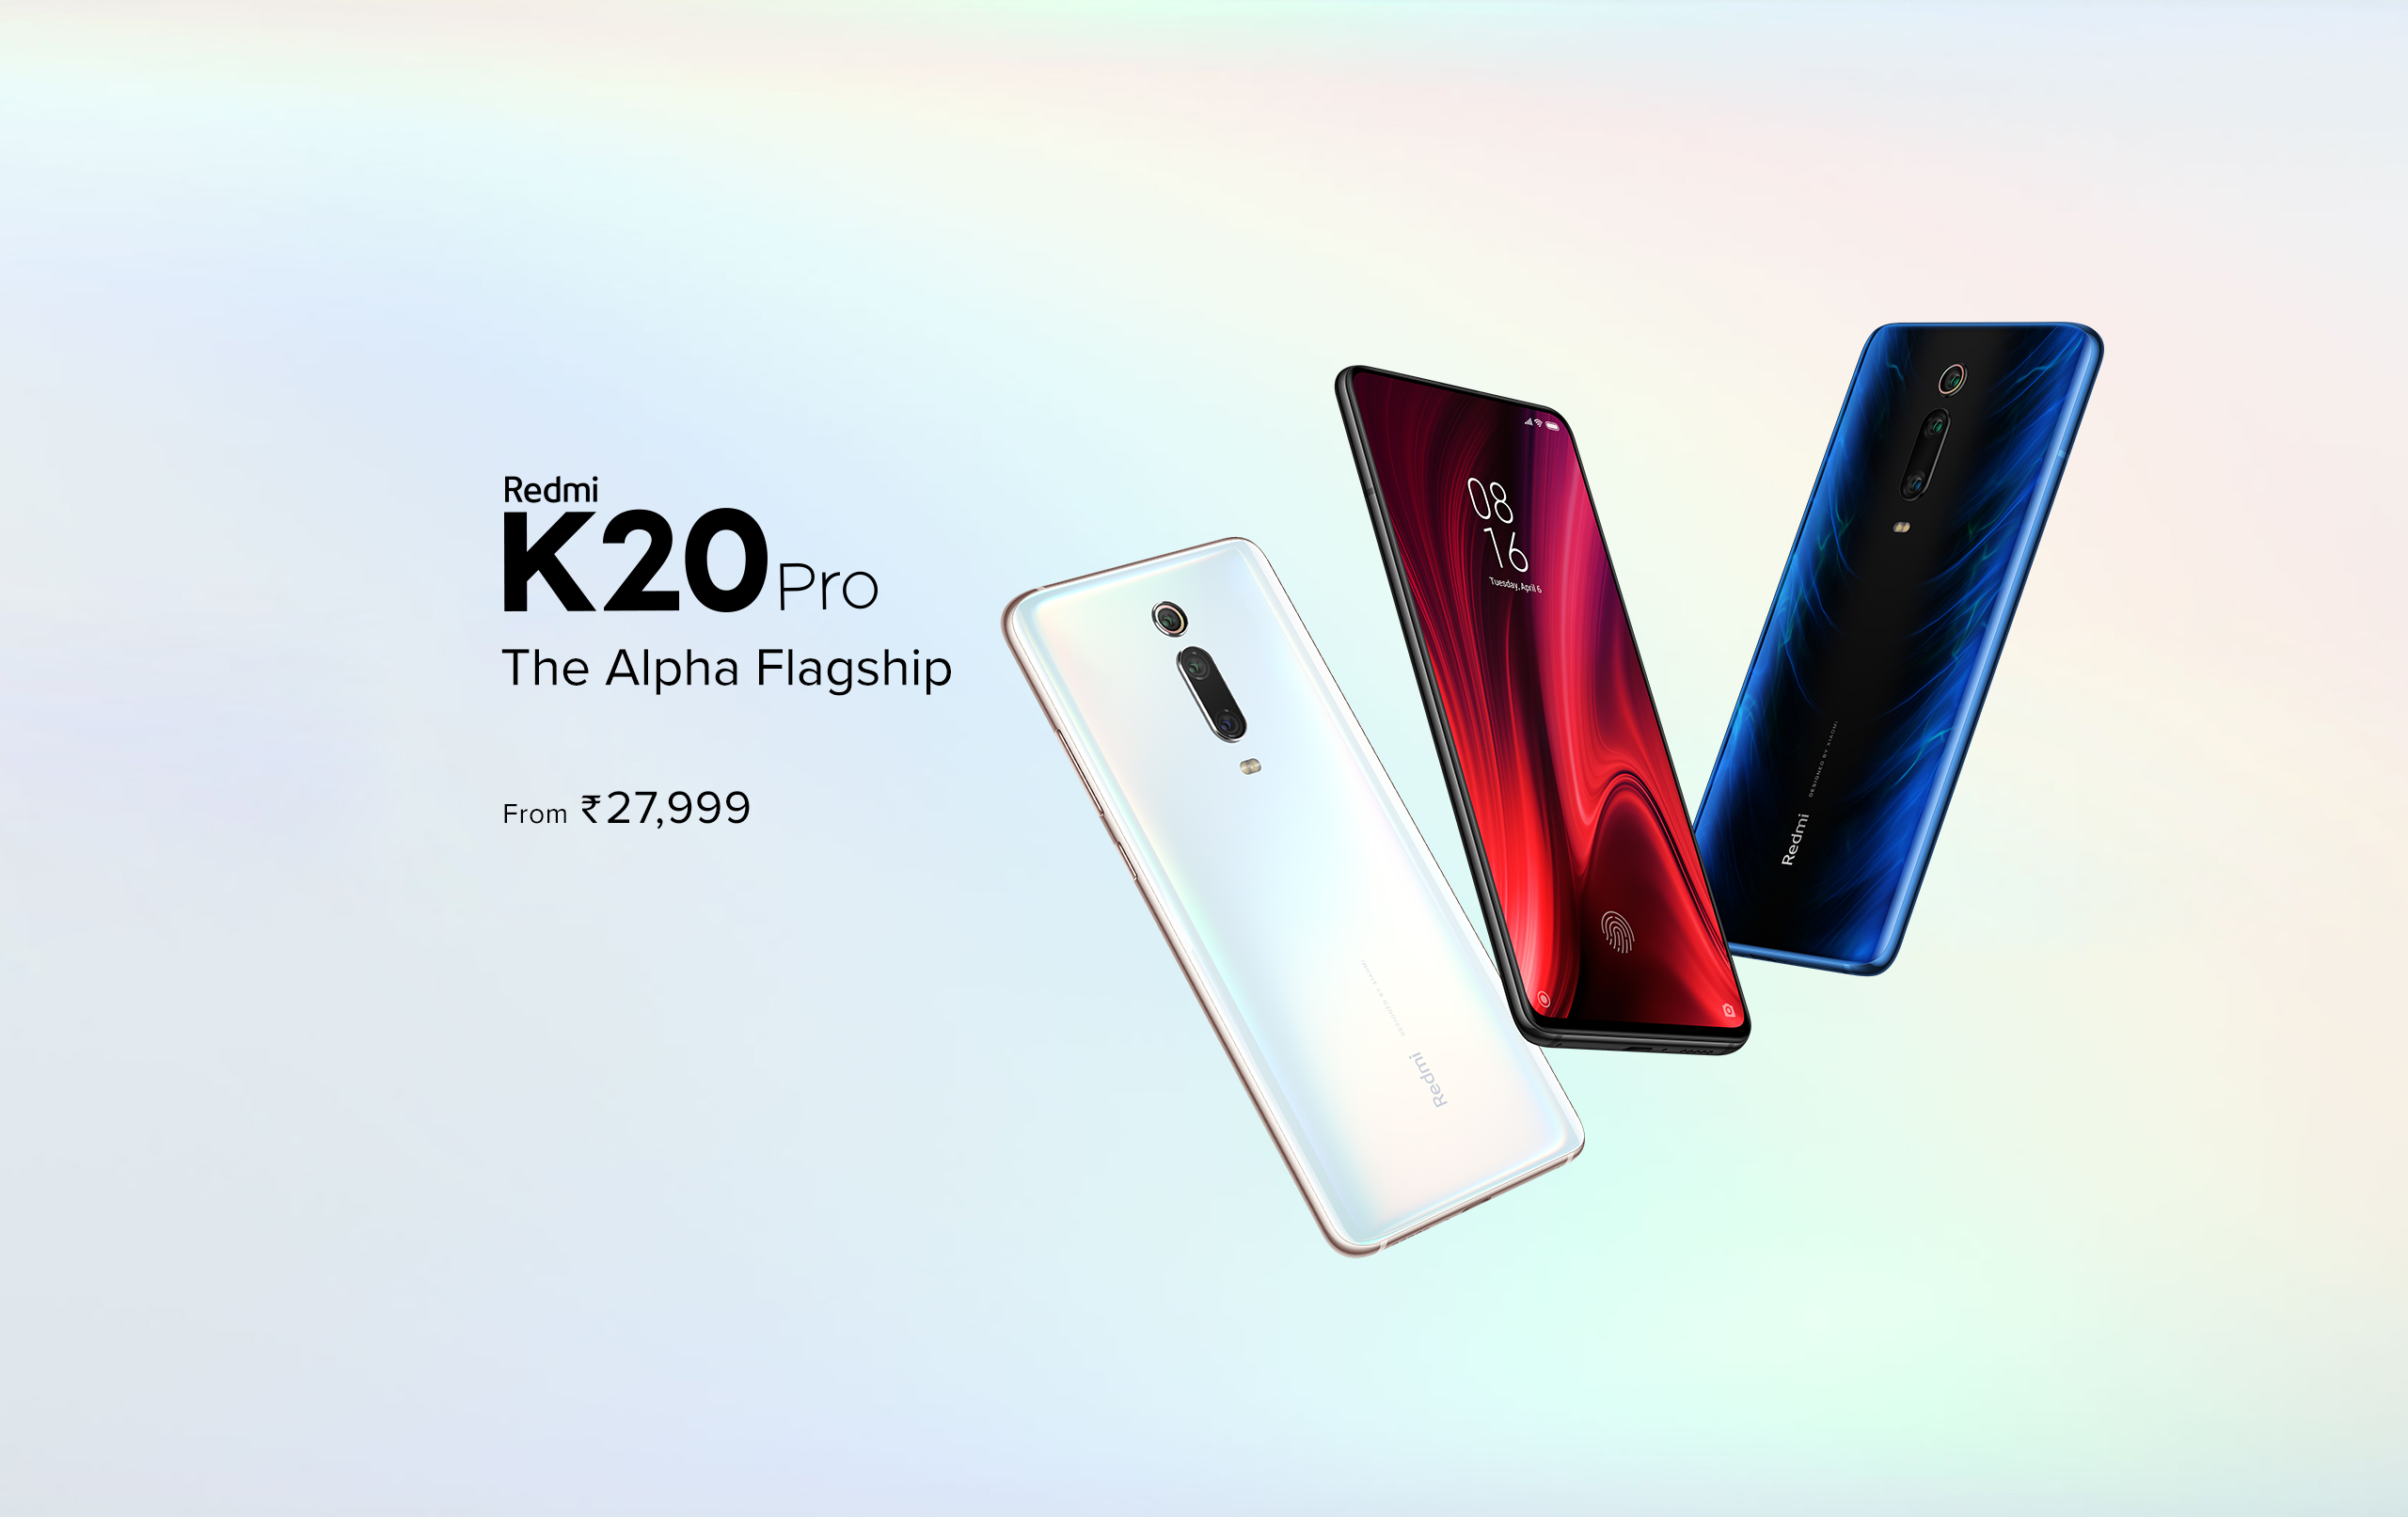 Redmi K20 Pro | The Alpha Flagship @27,999